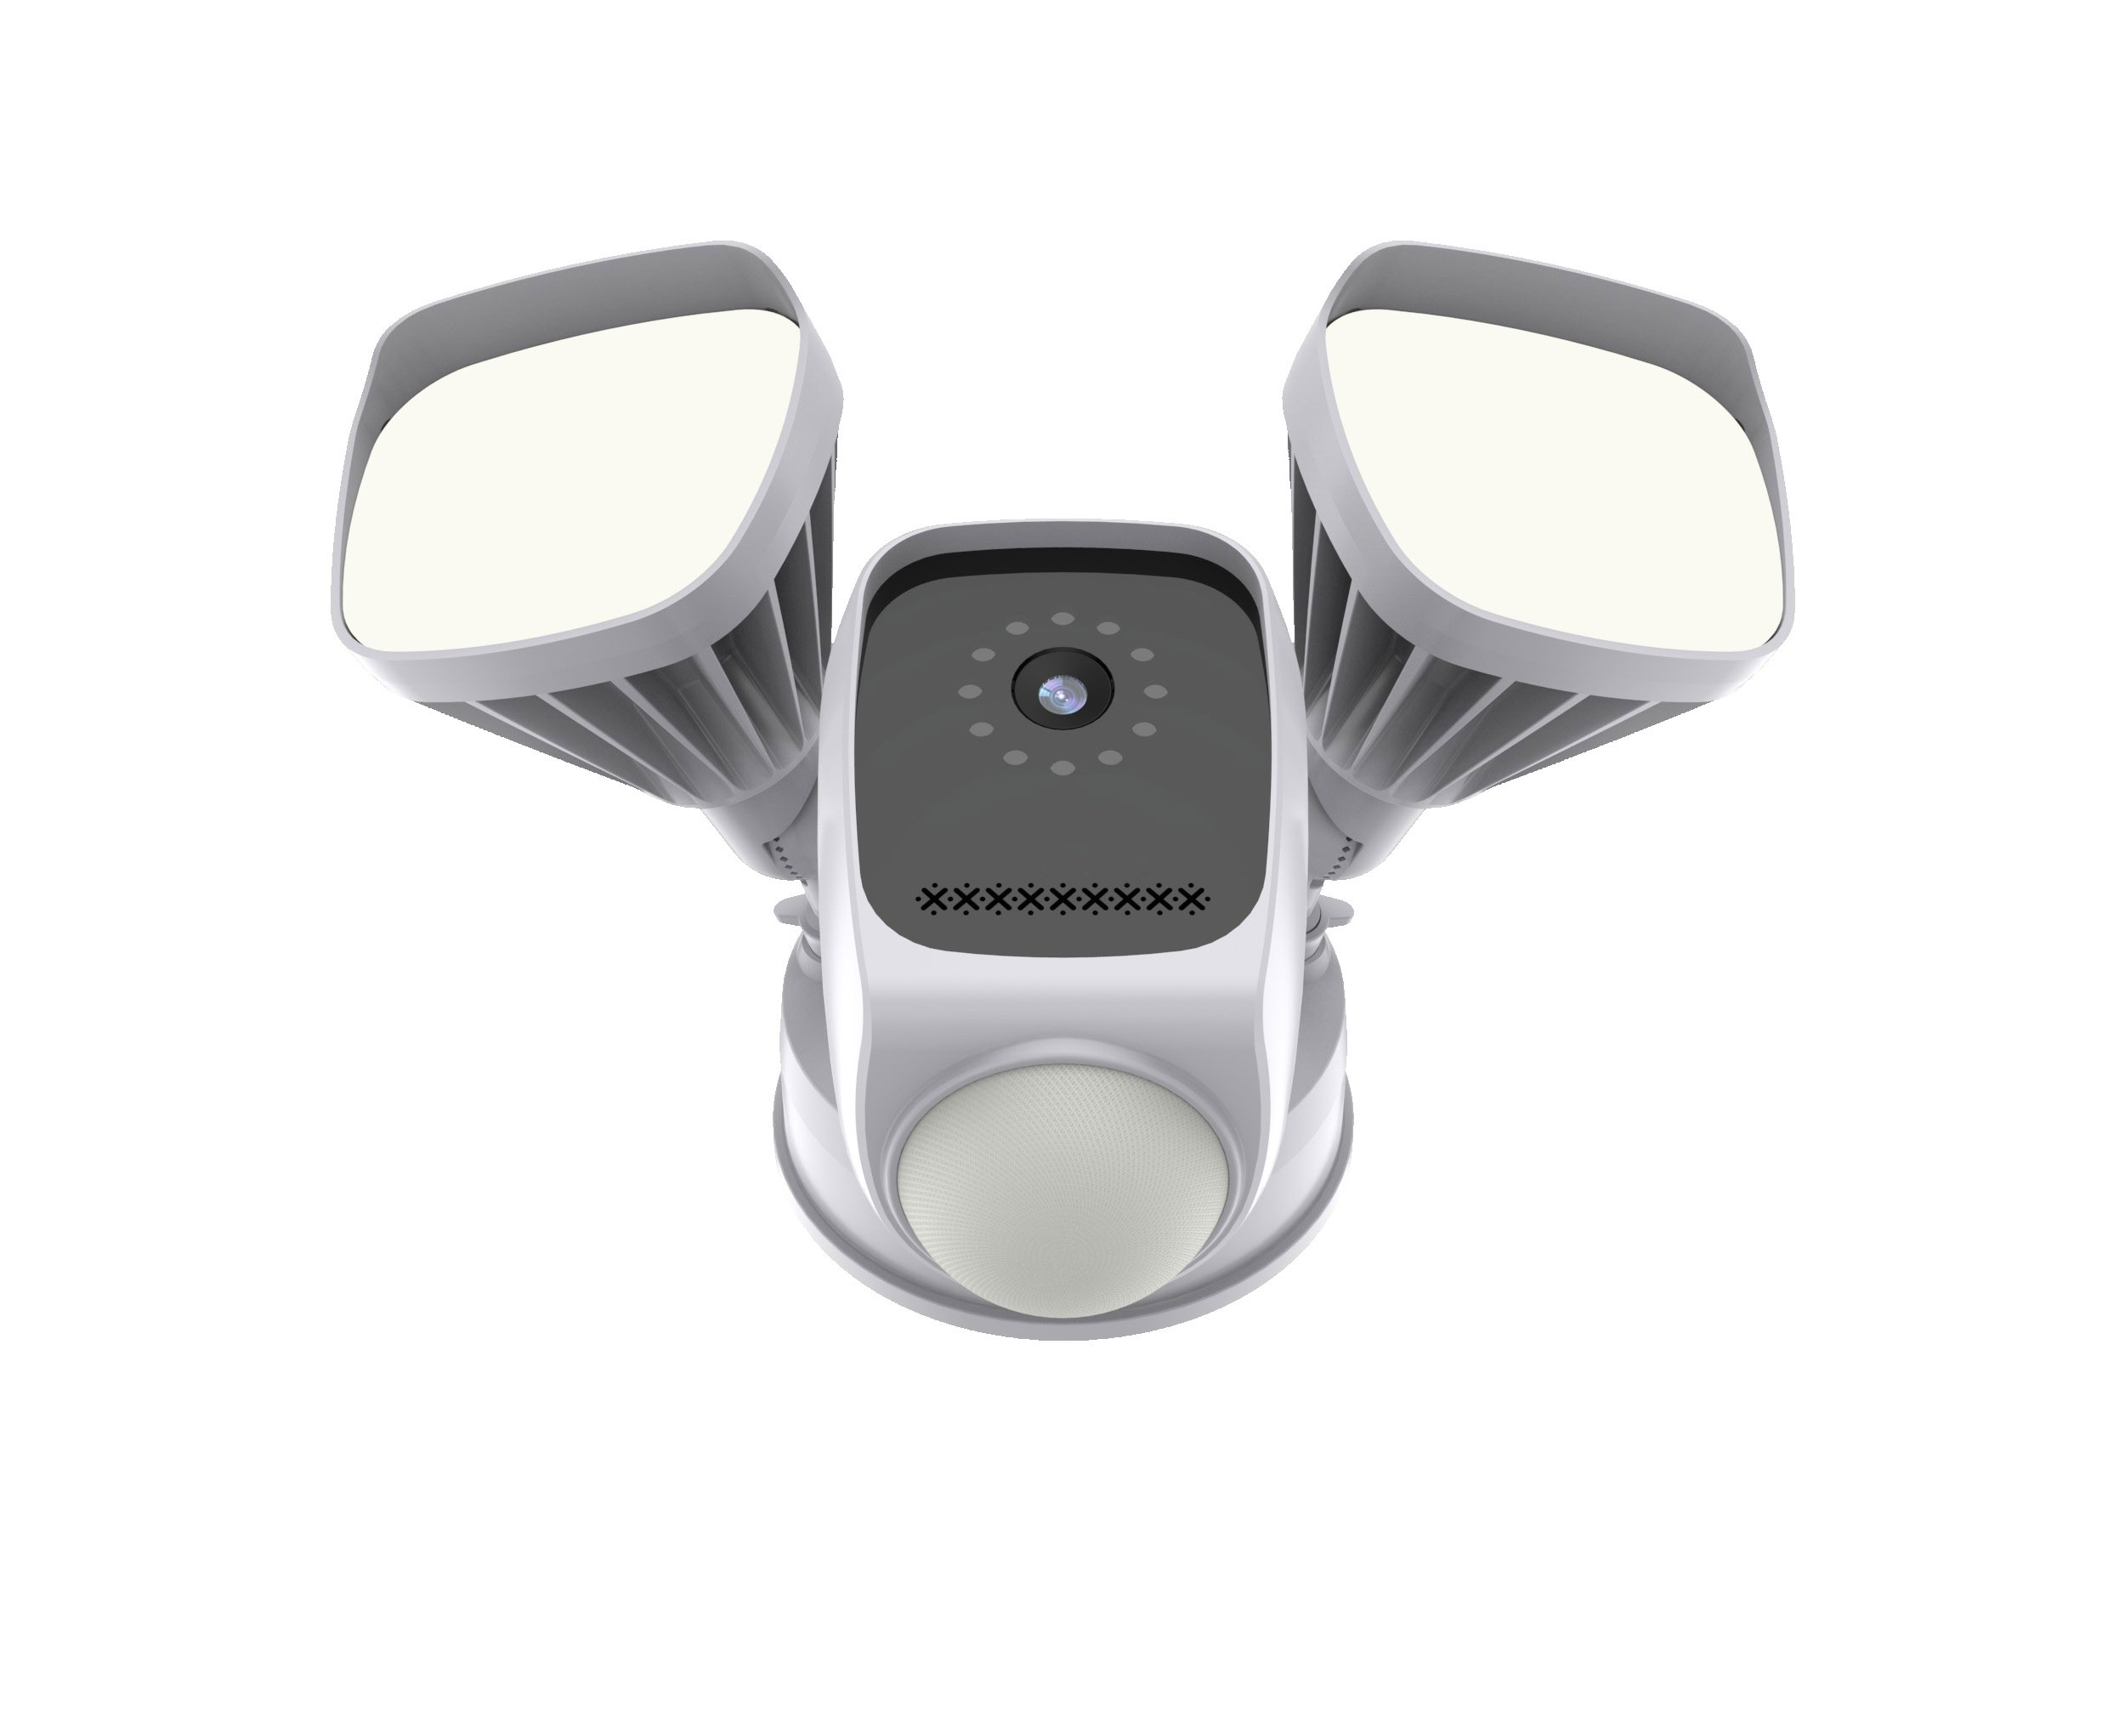 Floodlight <strong>Security</strong> WiFi Camera Motion-Activated with Alarm Push and Cloud Service, for Home <strong>Security</strong> Outdoor Use,White